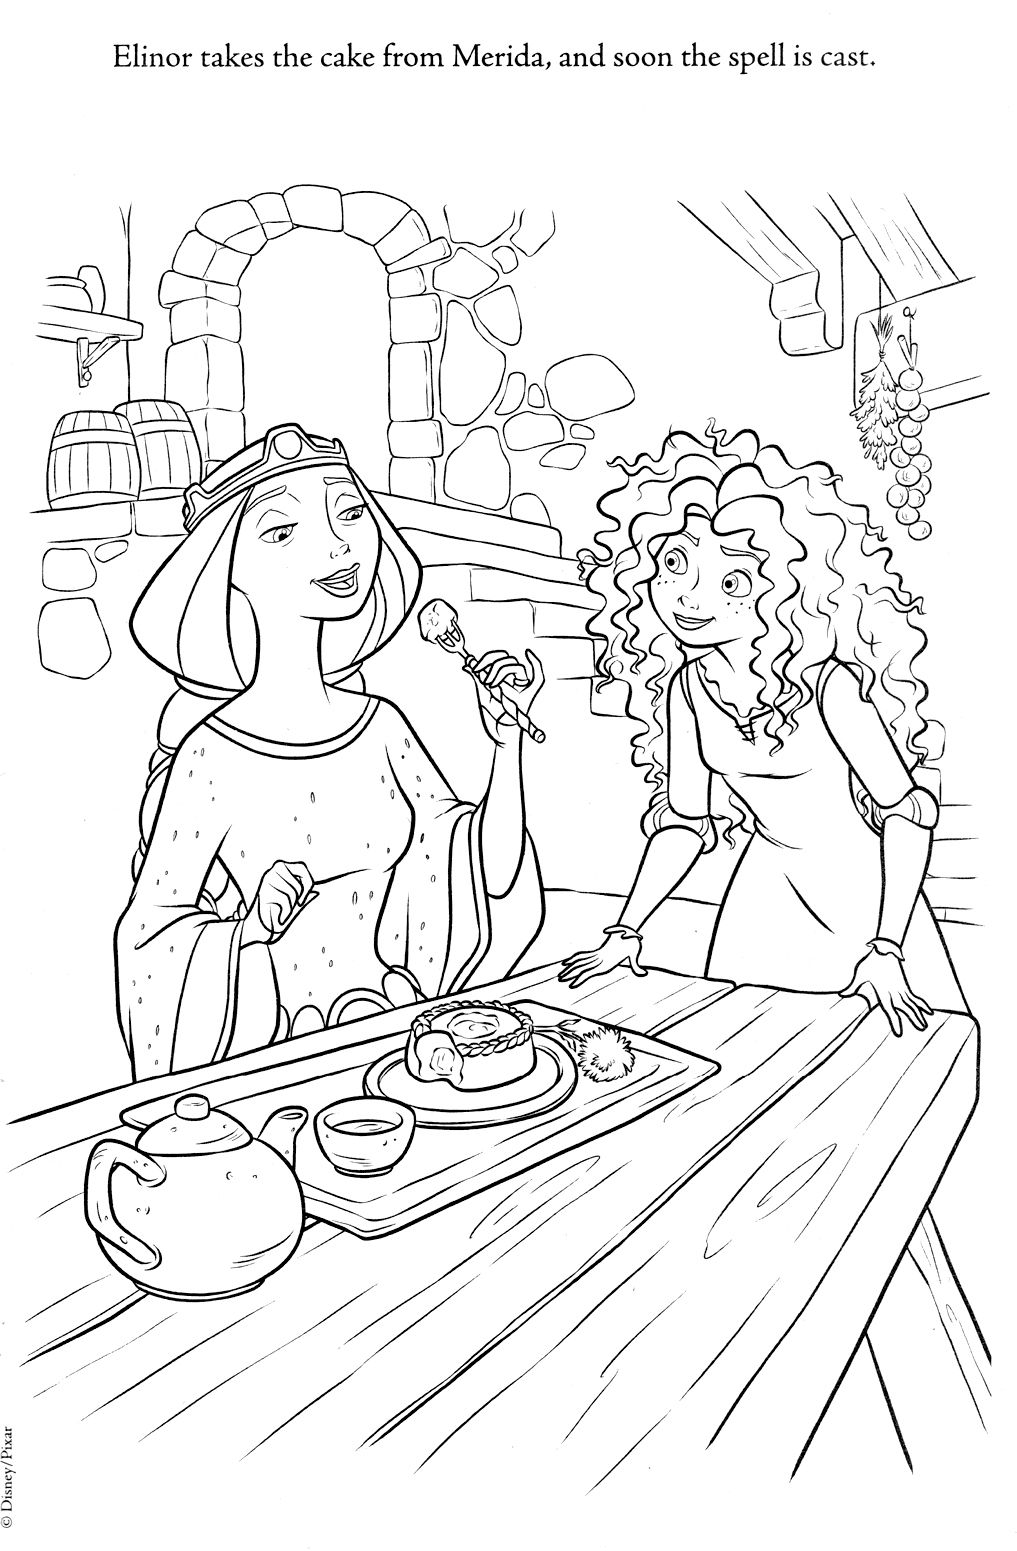 brave coloring page 43 is a coloring page from brave coloring booklet your children express their imagination when they color the brave coloring page they